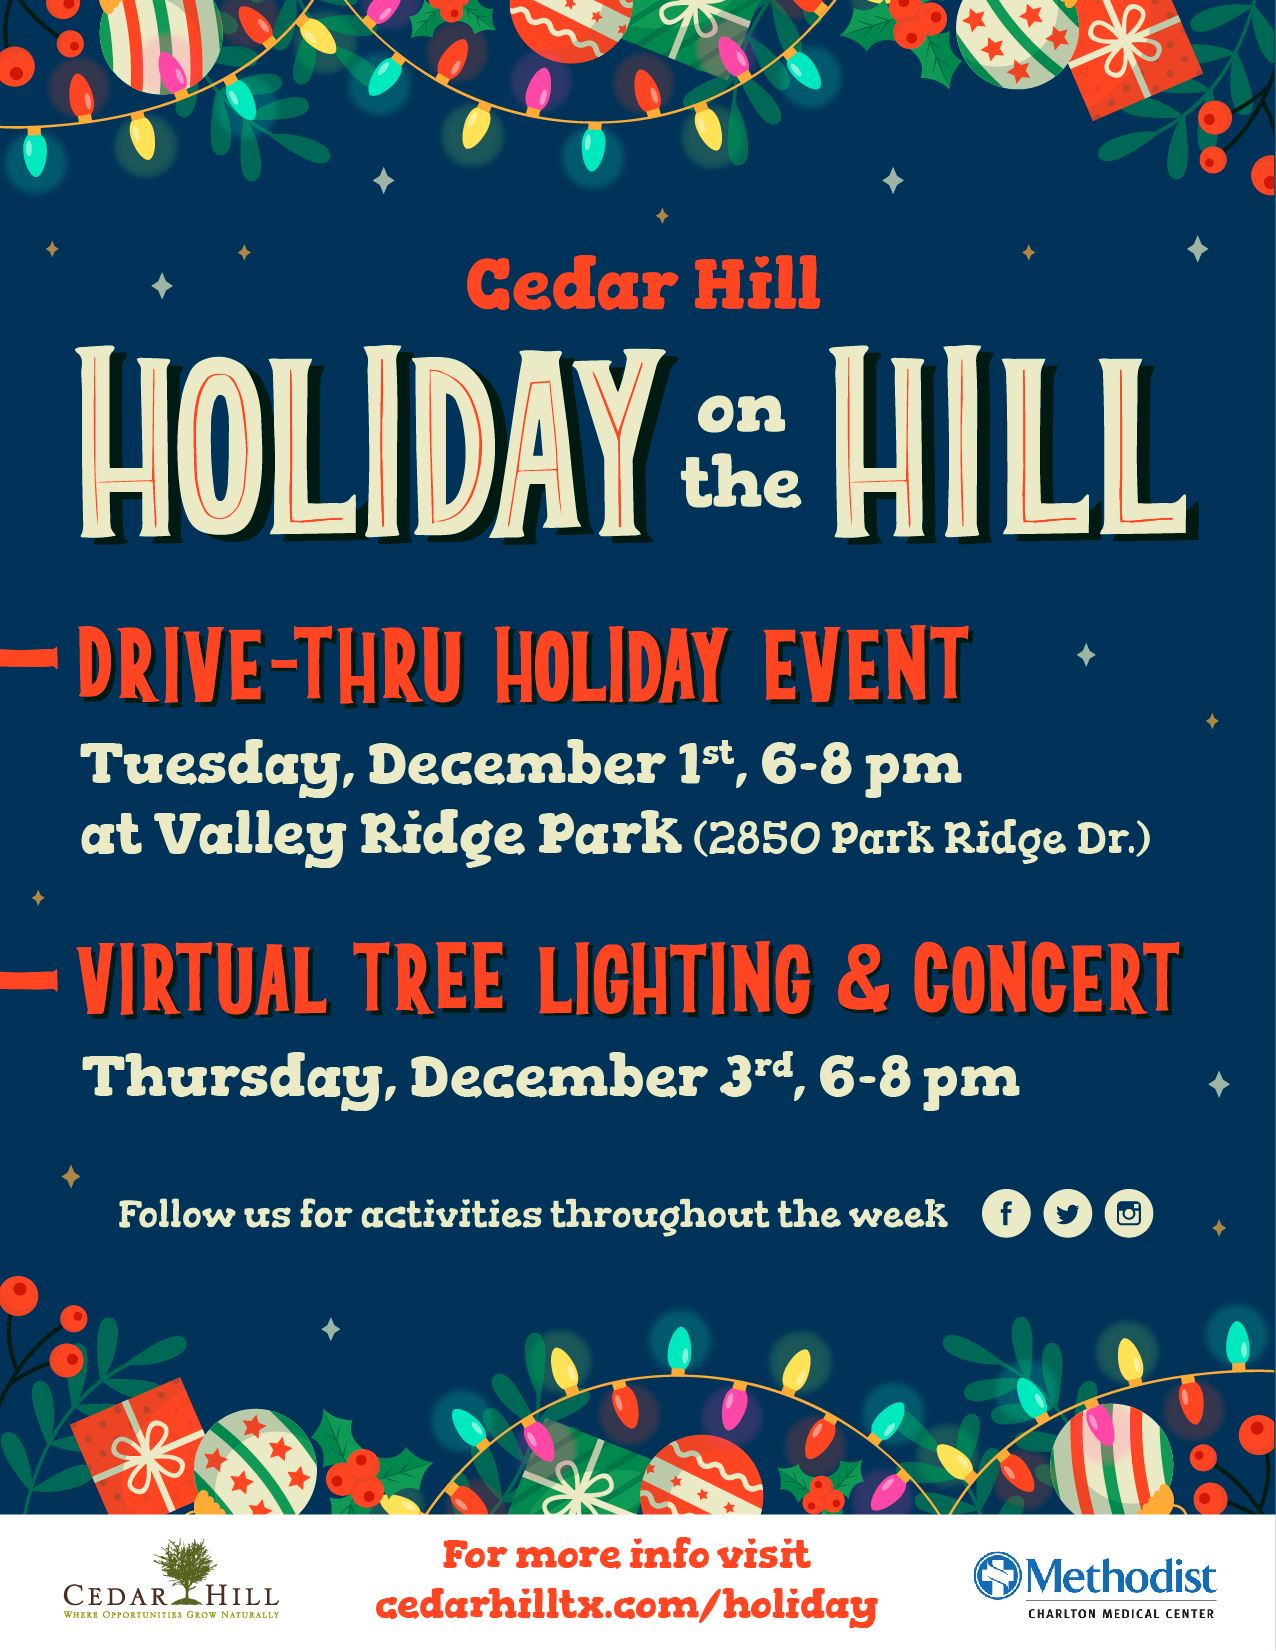 2020 Holiday on the Hill